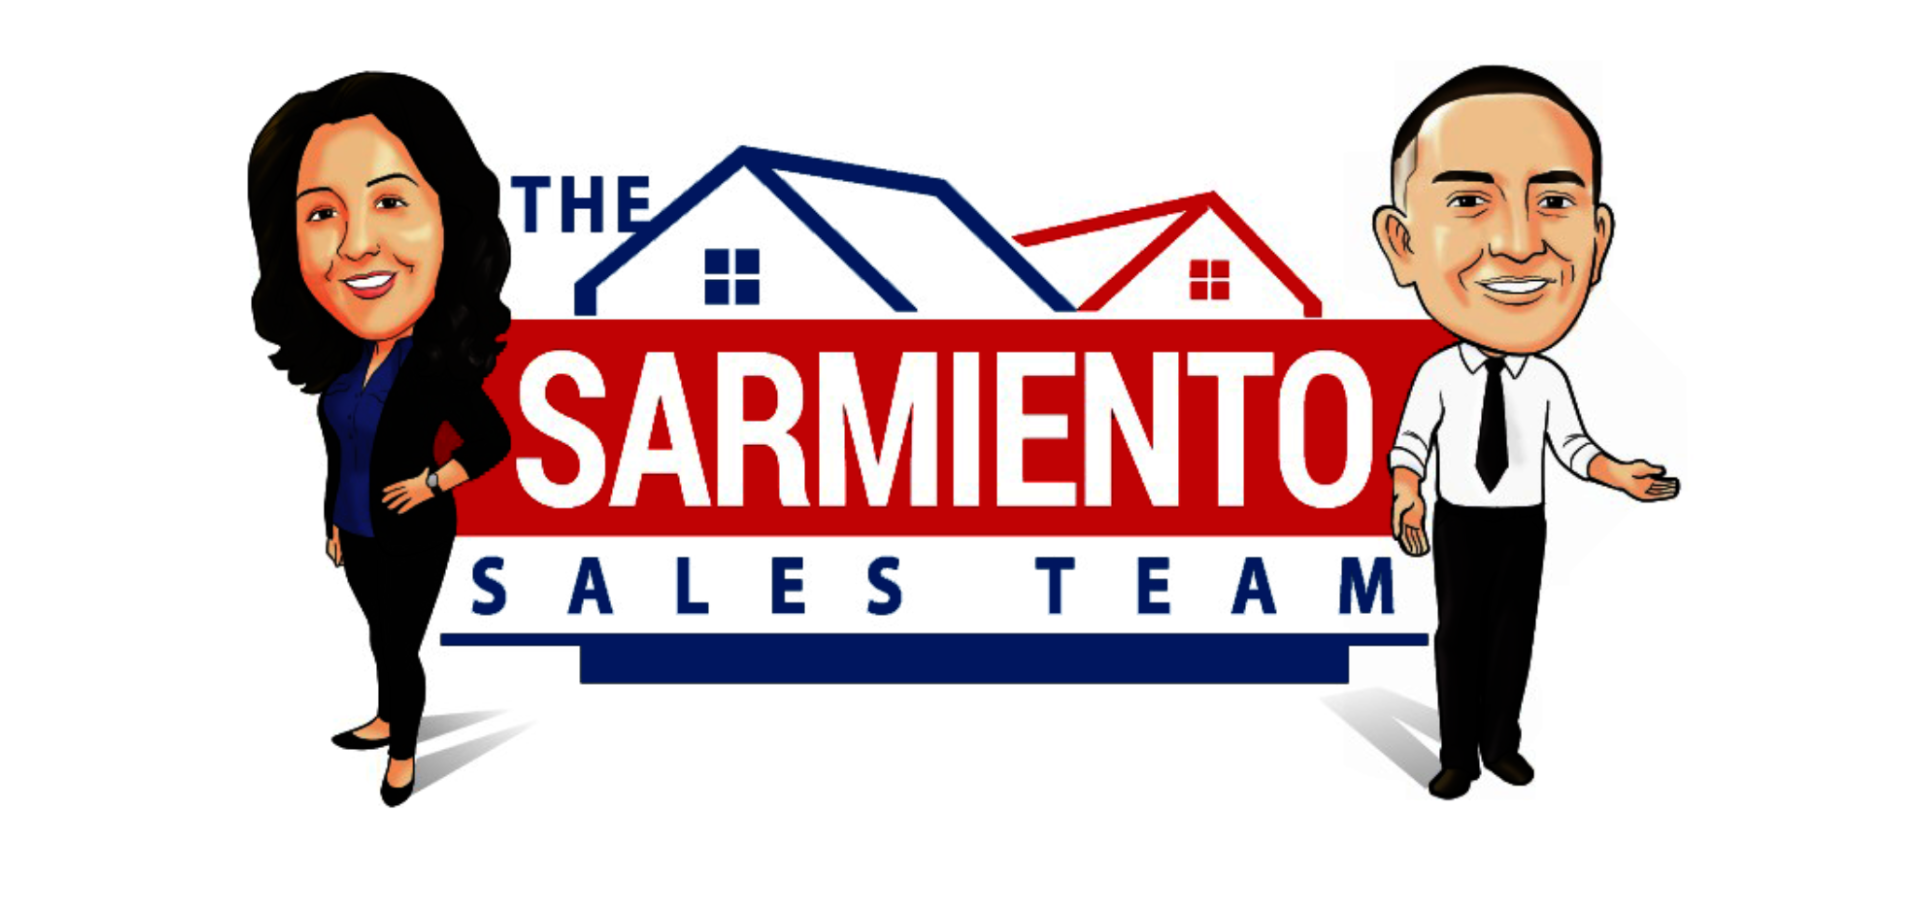 The Sarmiento Sales Team<br>RE/MAX Distinguished Homes & Properties